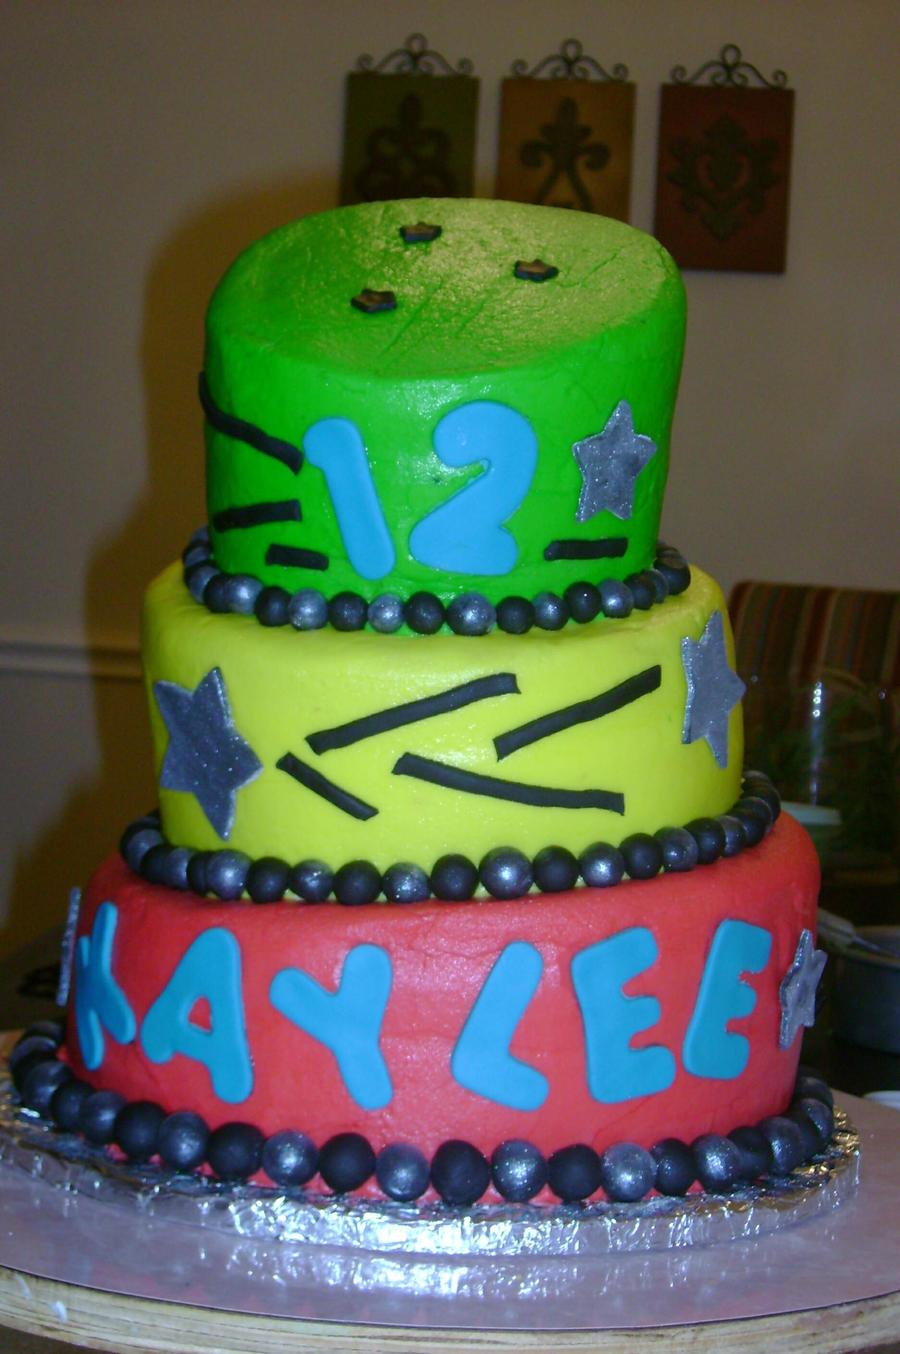 12Th Birthday Topsy-Turvy on Cake Central